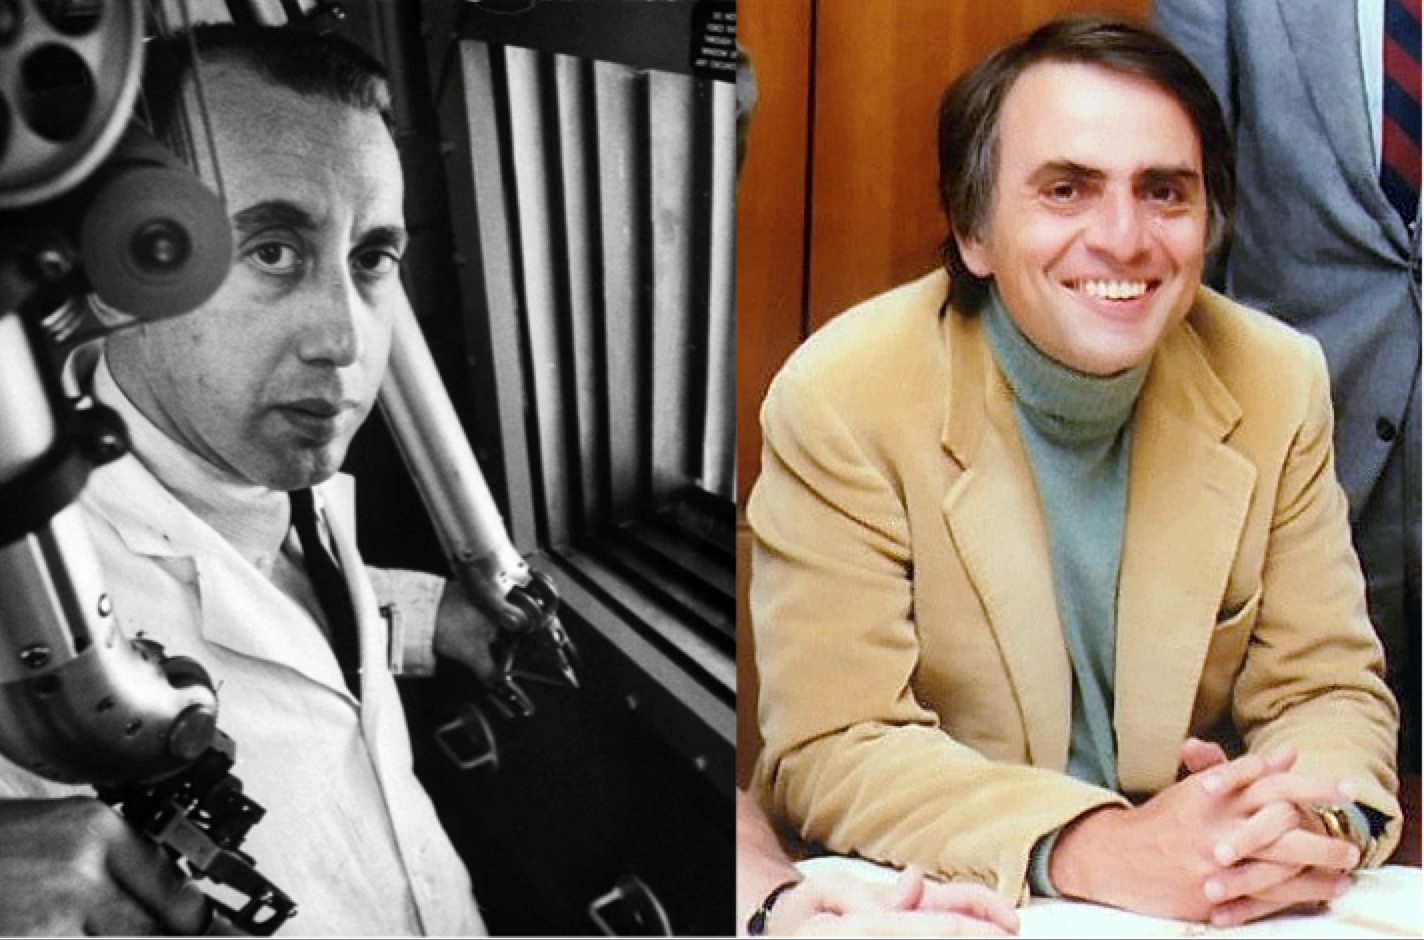 Leonard Reiffel (left) and Carl Sagan (right), two key members of the Project A119 team. Images via Getty Images and NASA JPL, respectively.